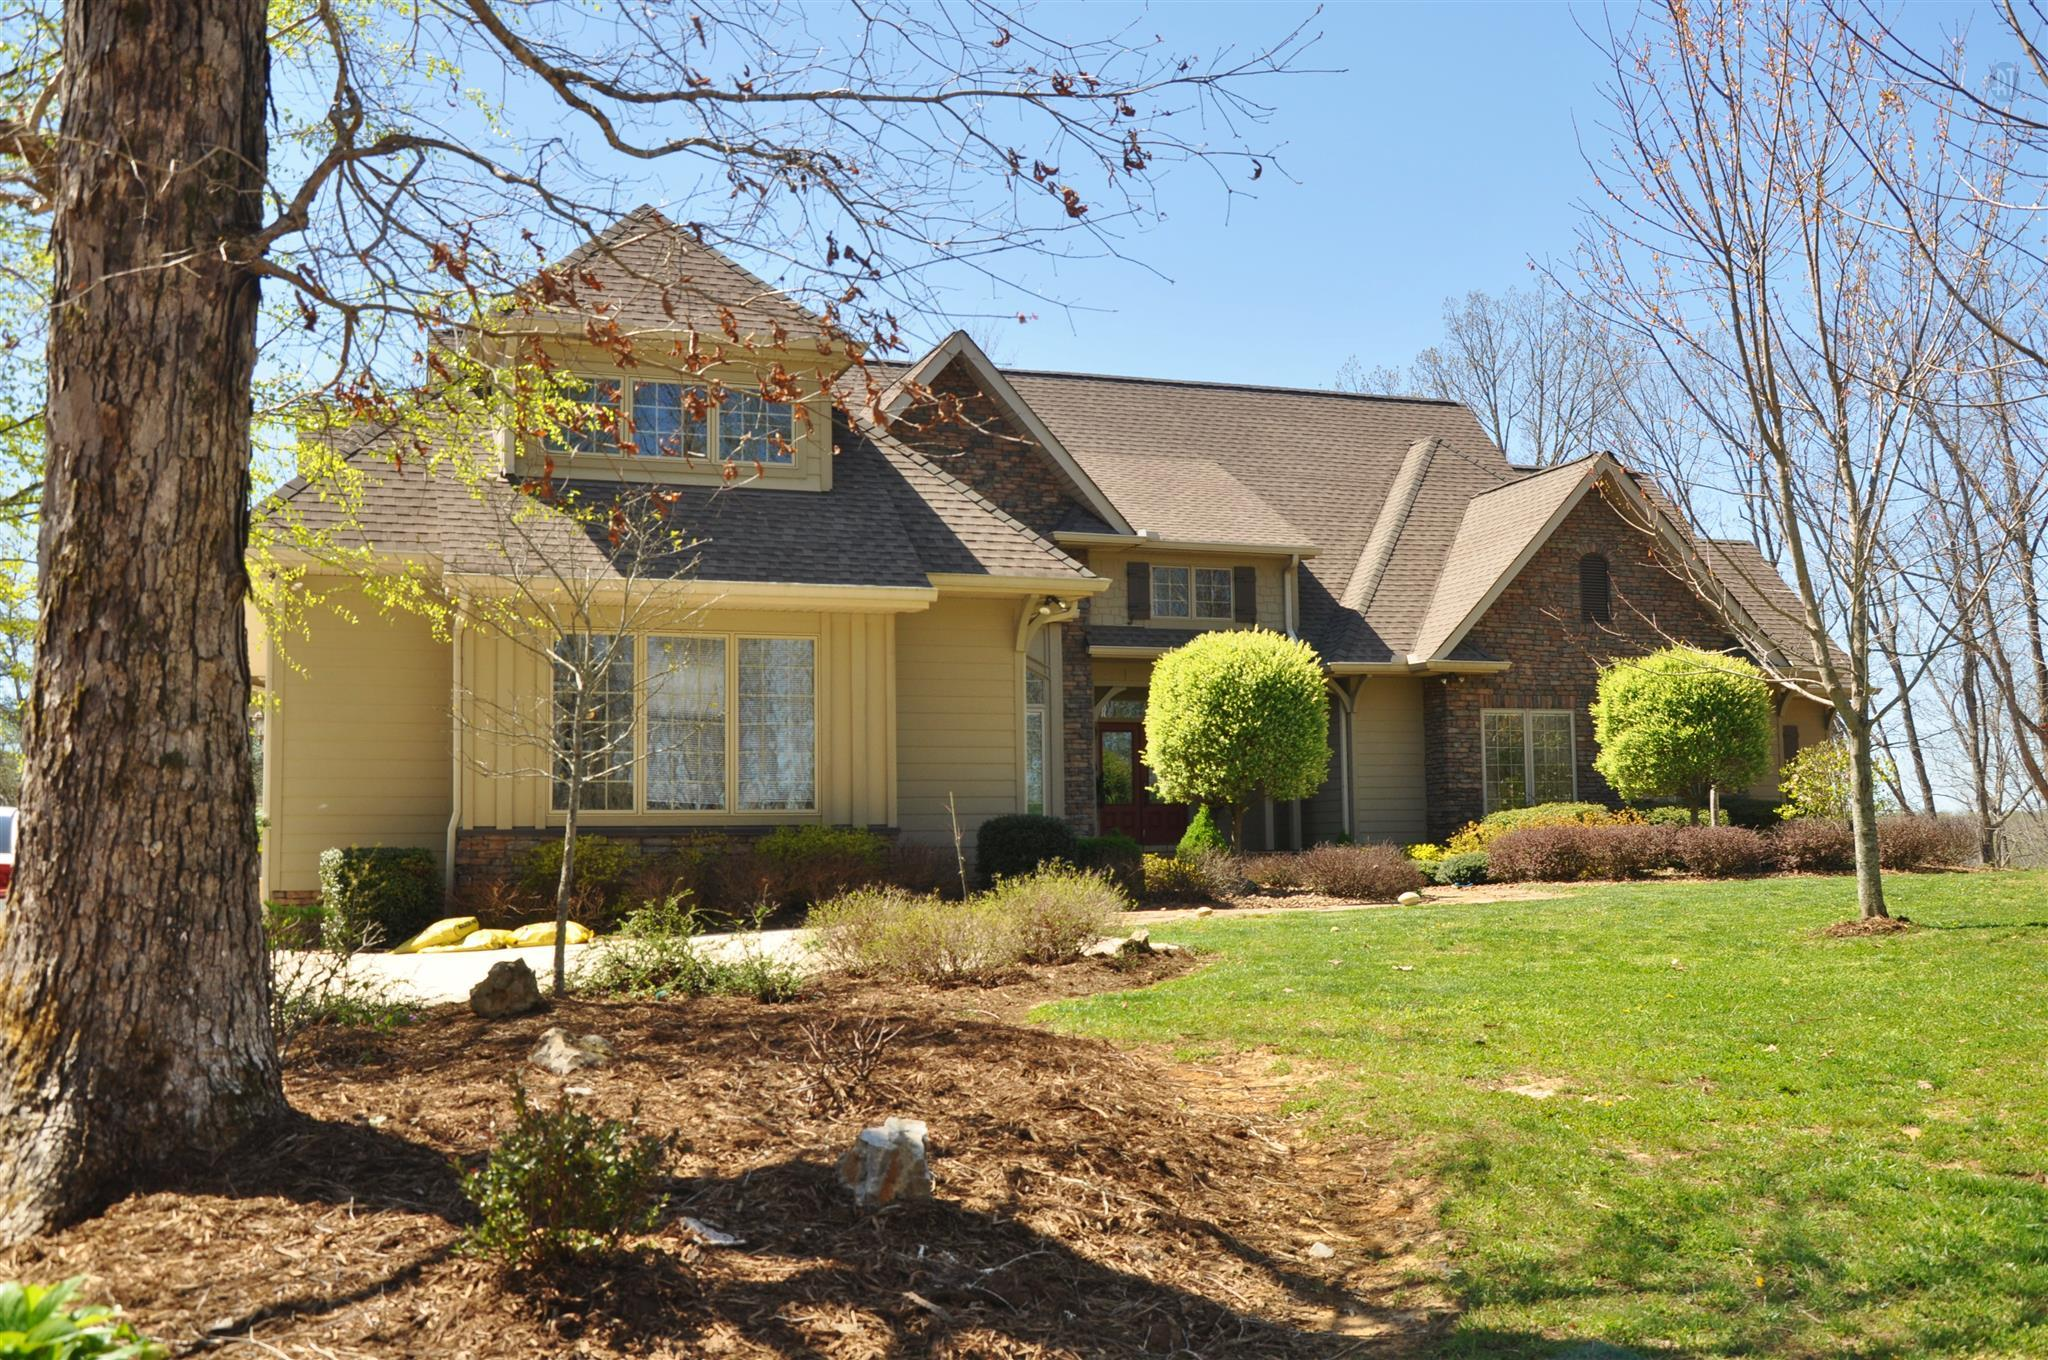 425 Water Color Dr, Sparta, TN 38583 - Sparta, TN real estate listing